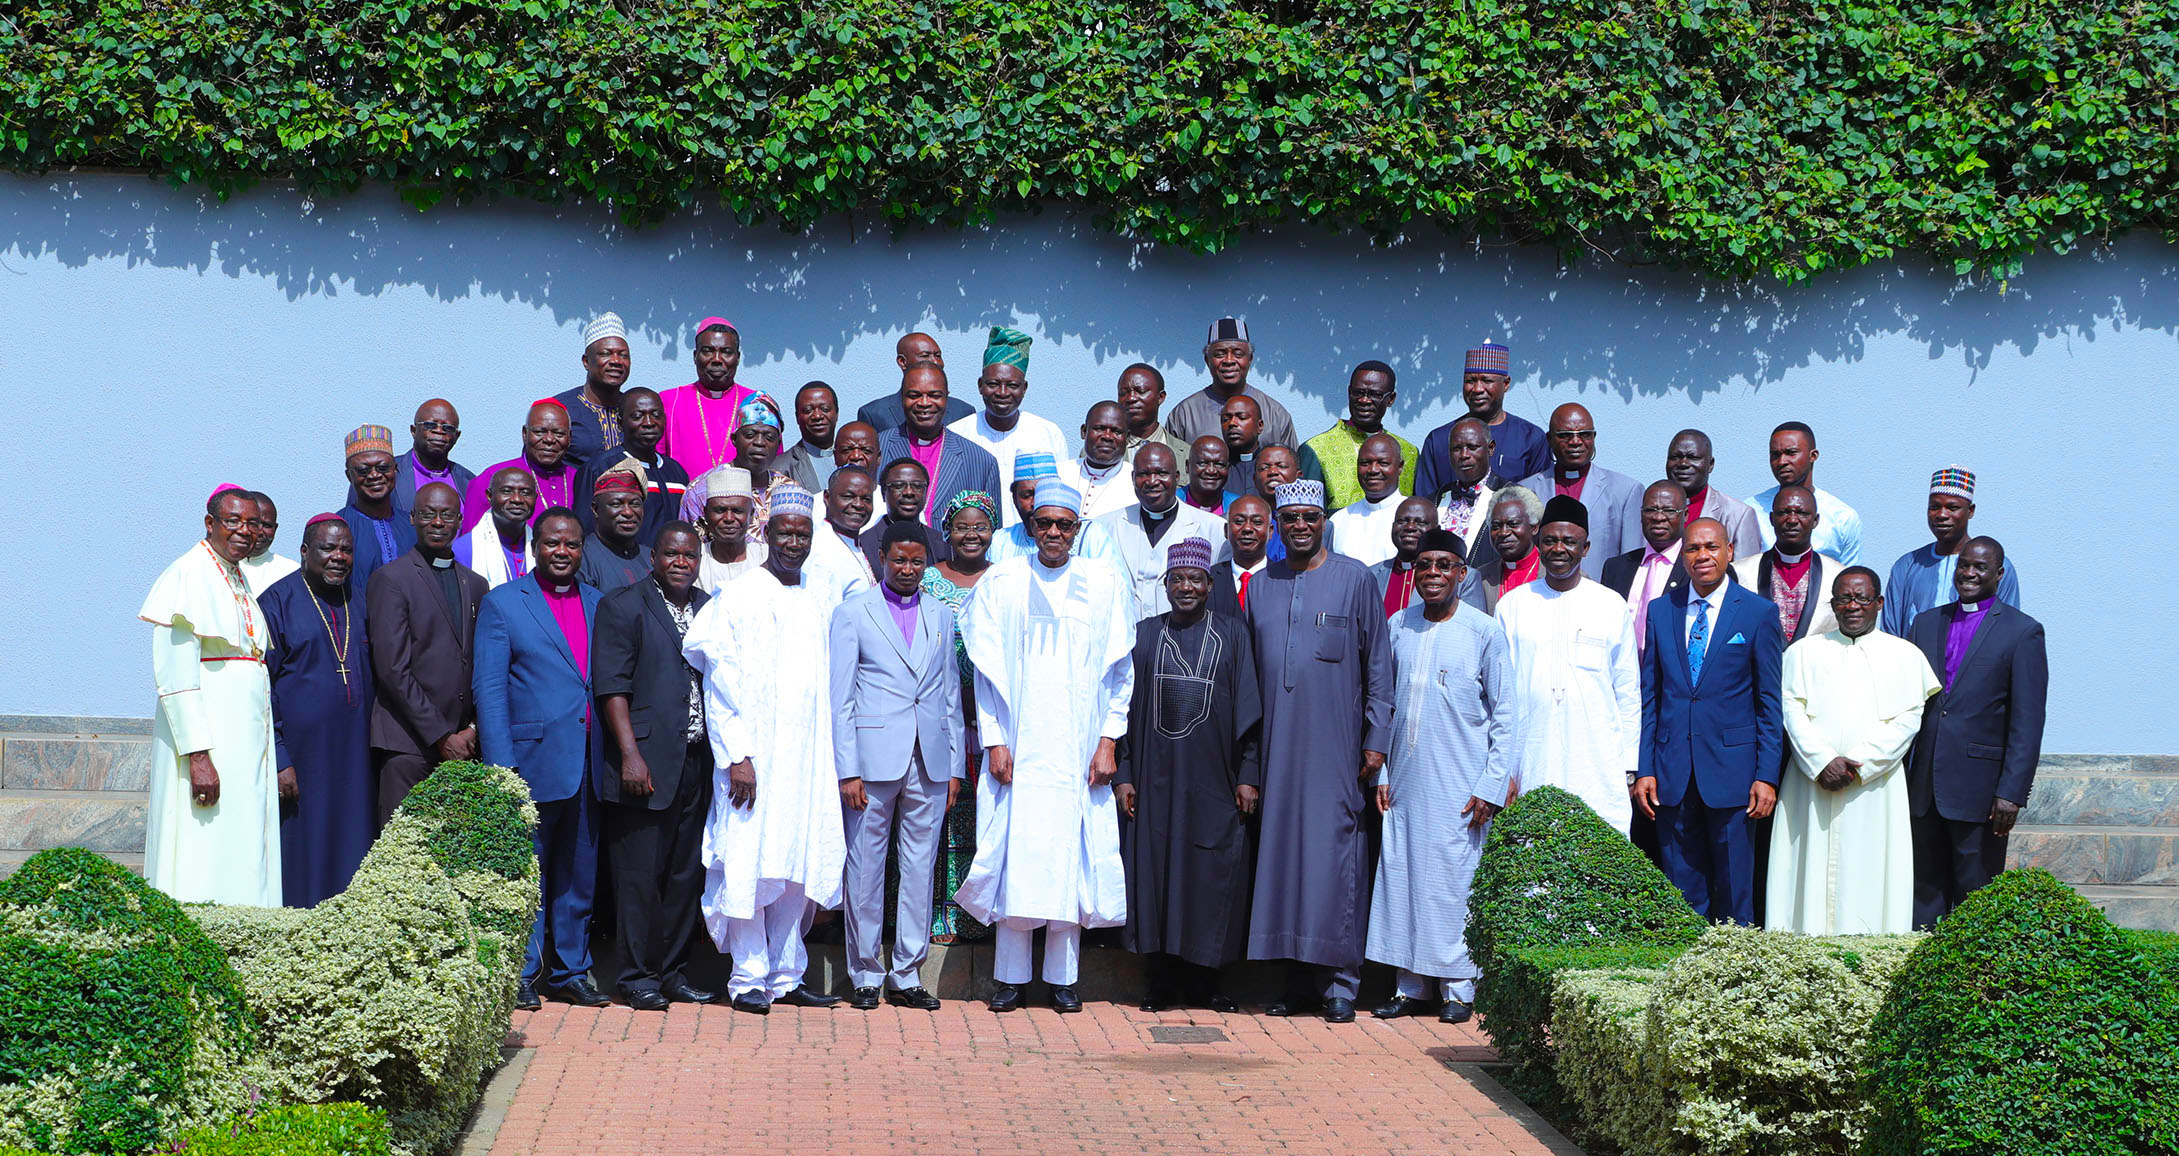 In Pictures: Buhari hosts Christian Association of Nigeria, leaders from 19 northern states